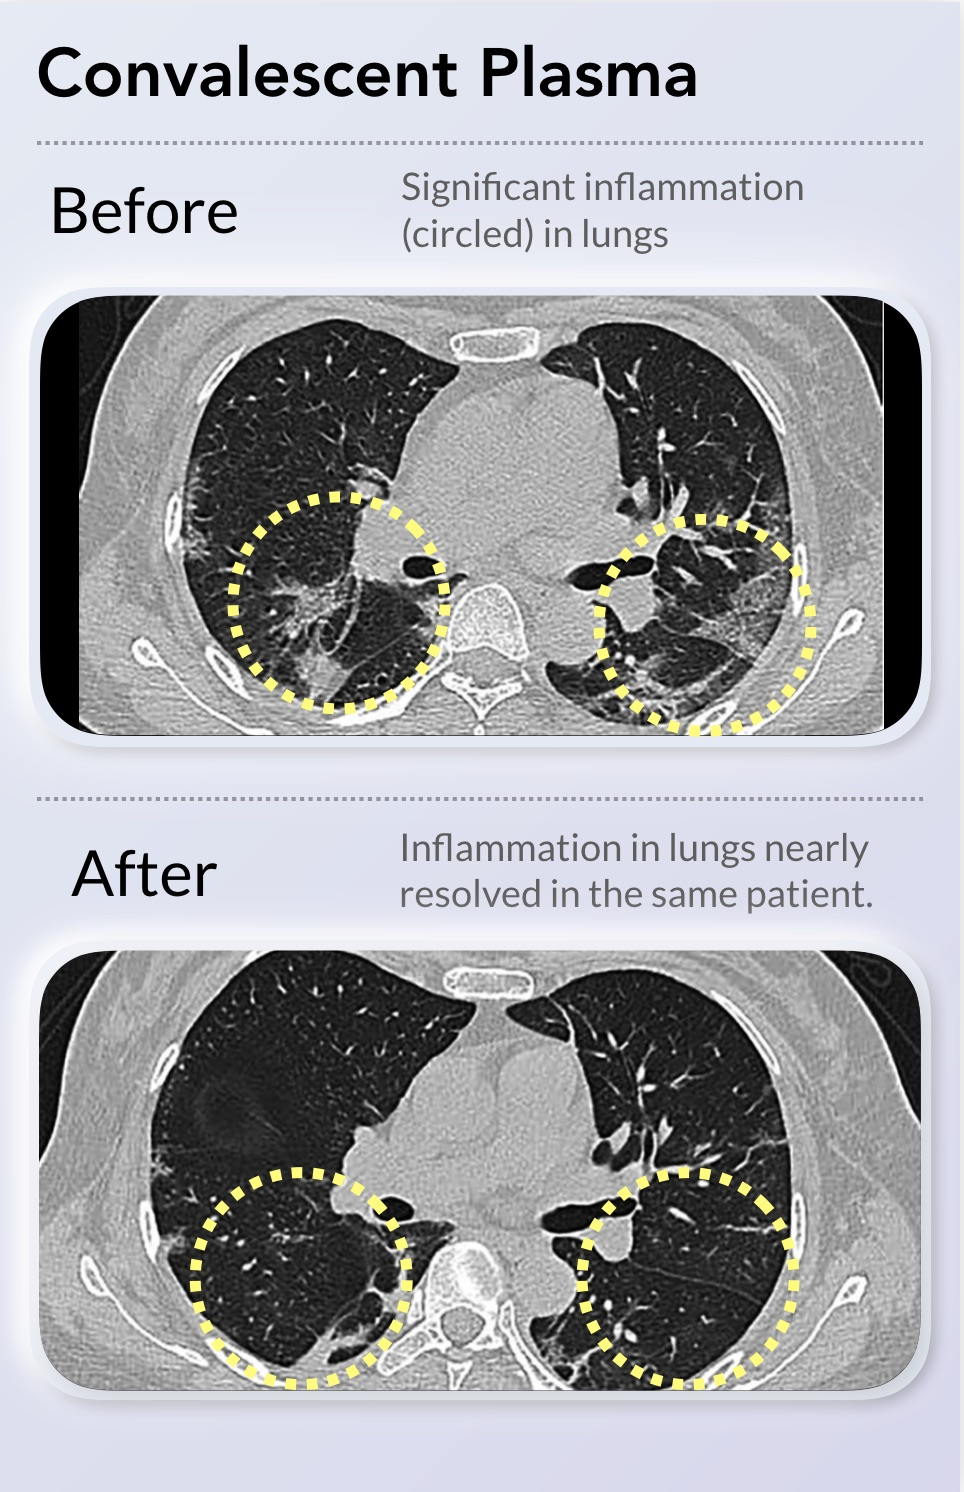 Effect of convalescent plasma on the lungs